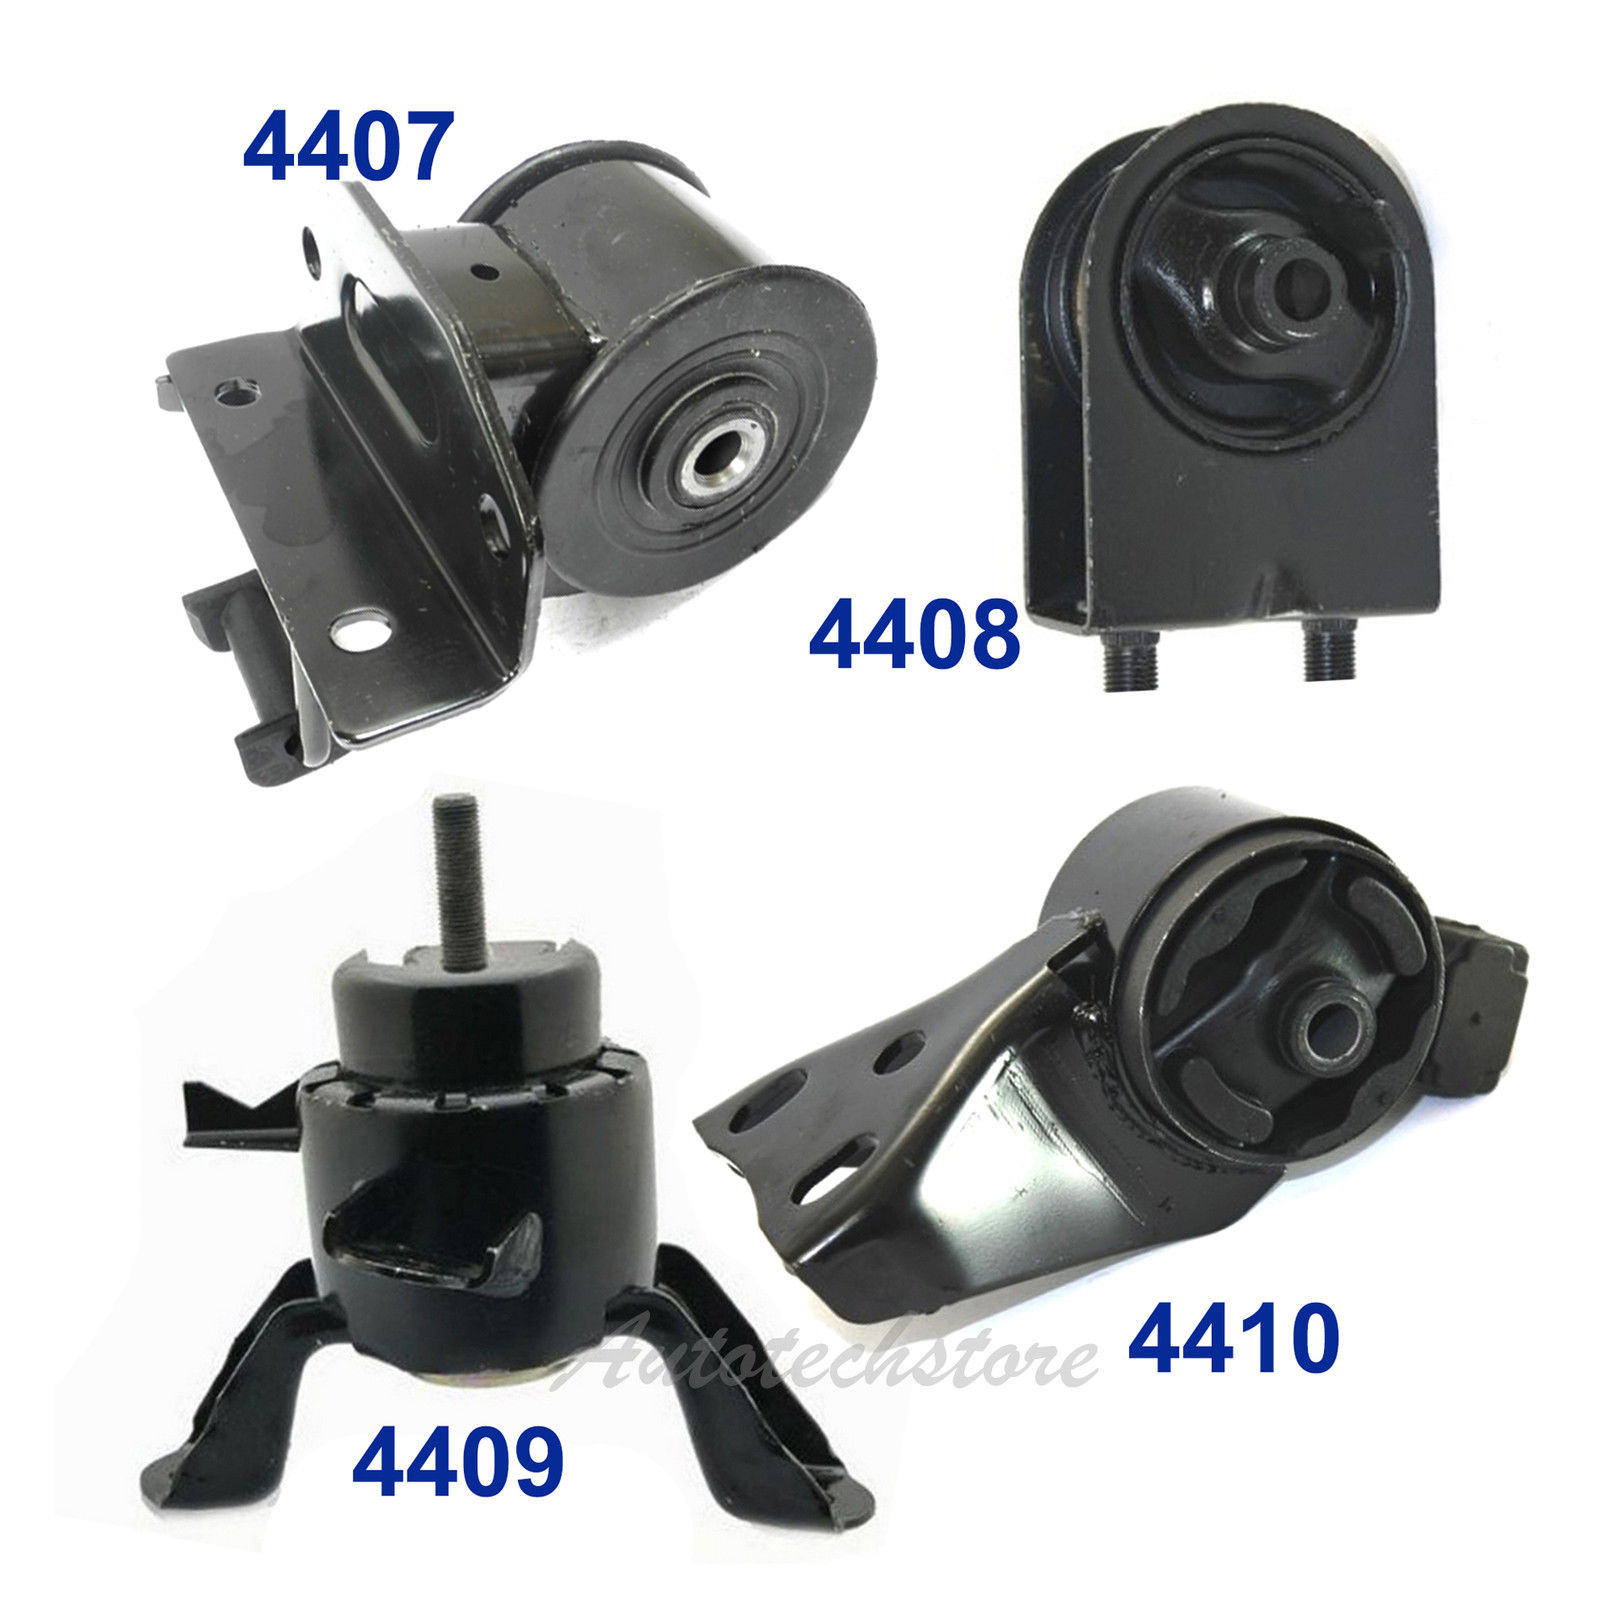 hight resolution of mount for 00 01 mazda mpv 2 5l 4407 4408 4409 4410 m1362